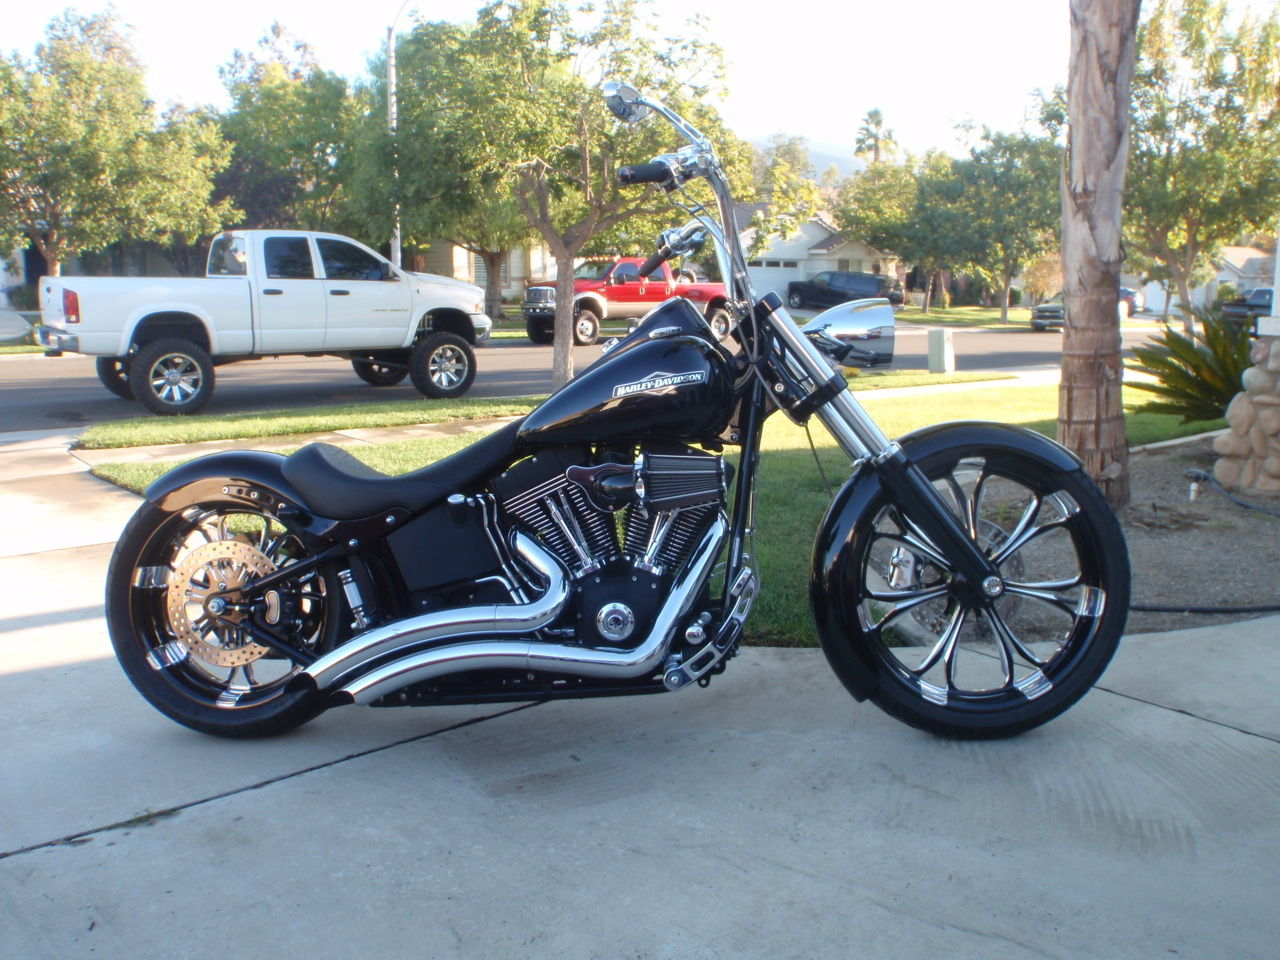 custom 2006 harley softail night train black low miles excellent condition. Black Bedroom Furniture Sets. Home Design Ideas